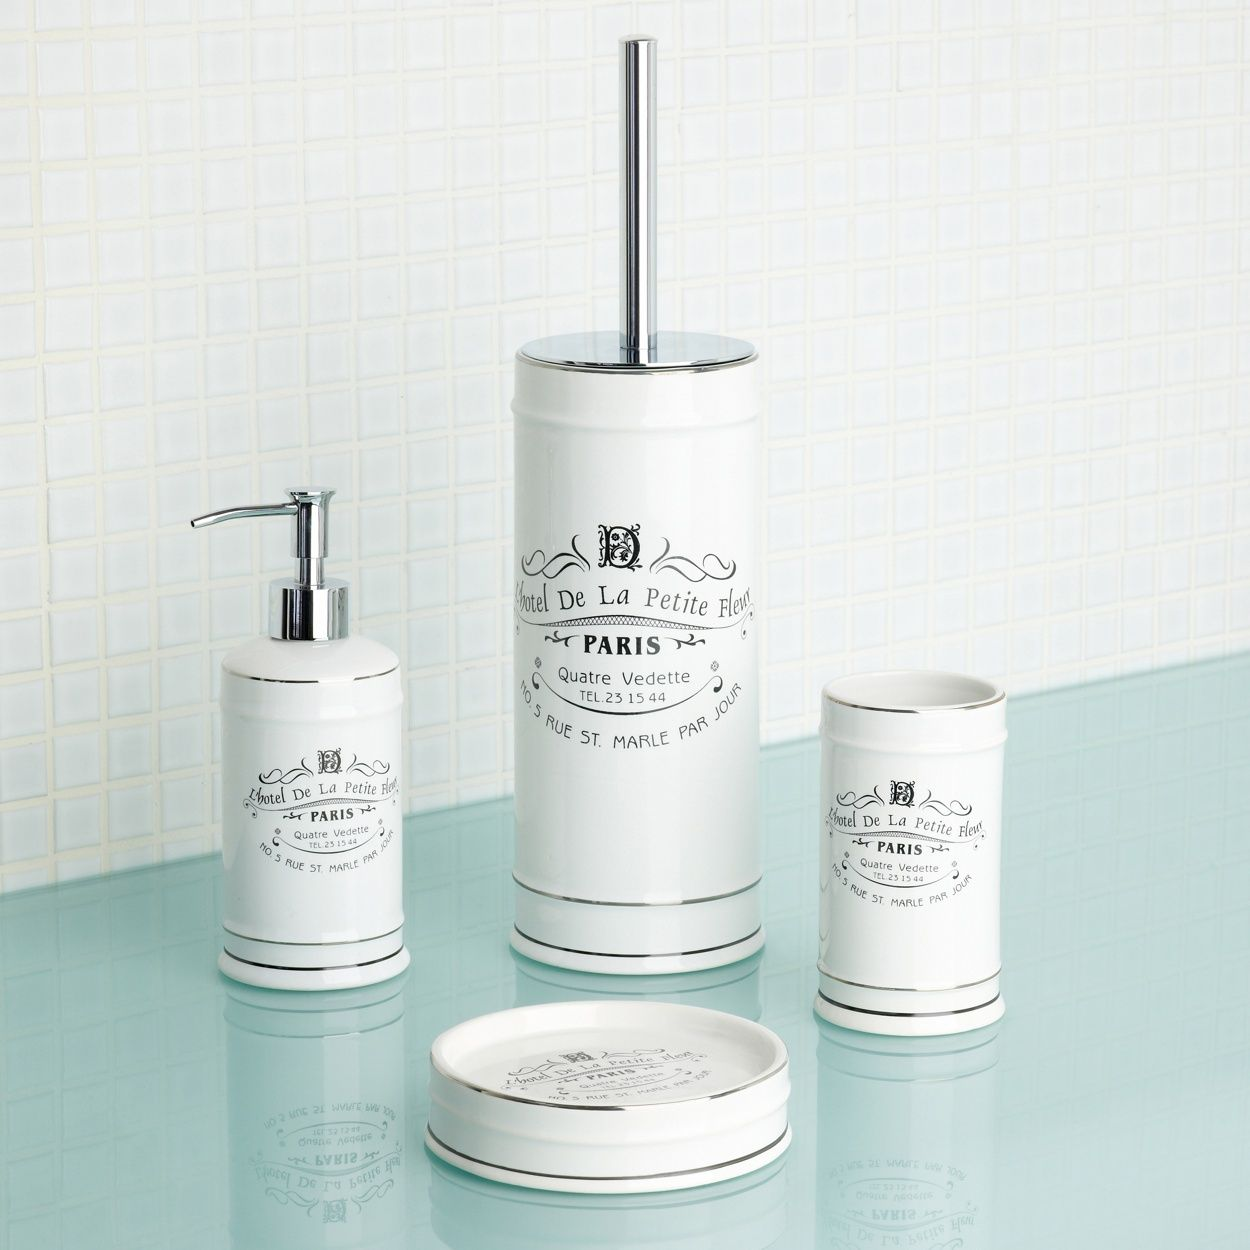 Vintage Bathroom Soap Dispenser Debenhams White Paris Bathroom Accessories At Debenhams